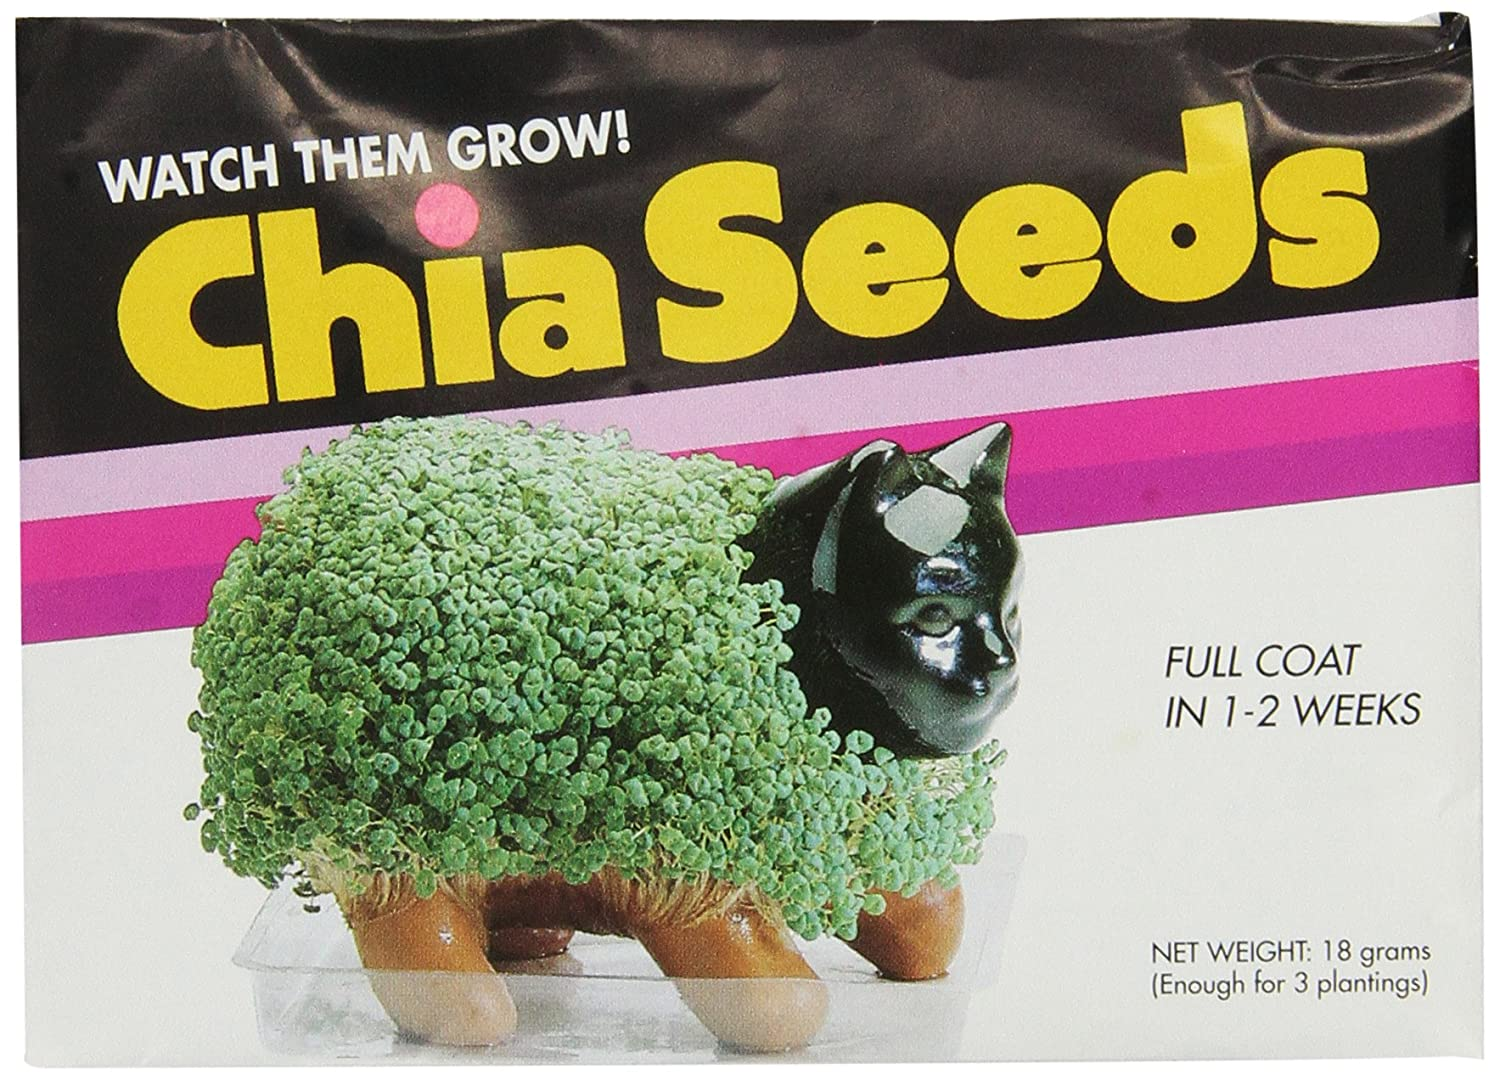 Chia Pet Seed Pack 3 Count, Decorative Pottery Planter, Easy to Do and Fun to Grow, Novelty Gift, Perfect for Any Occasion